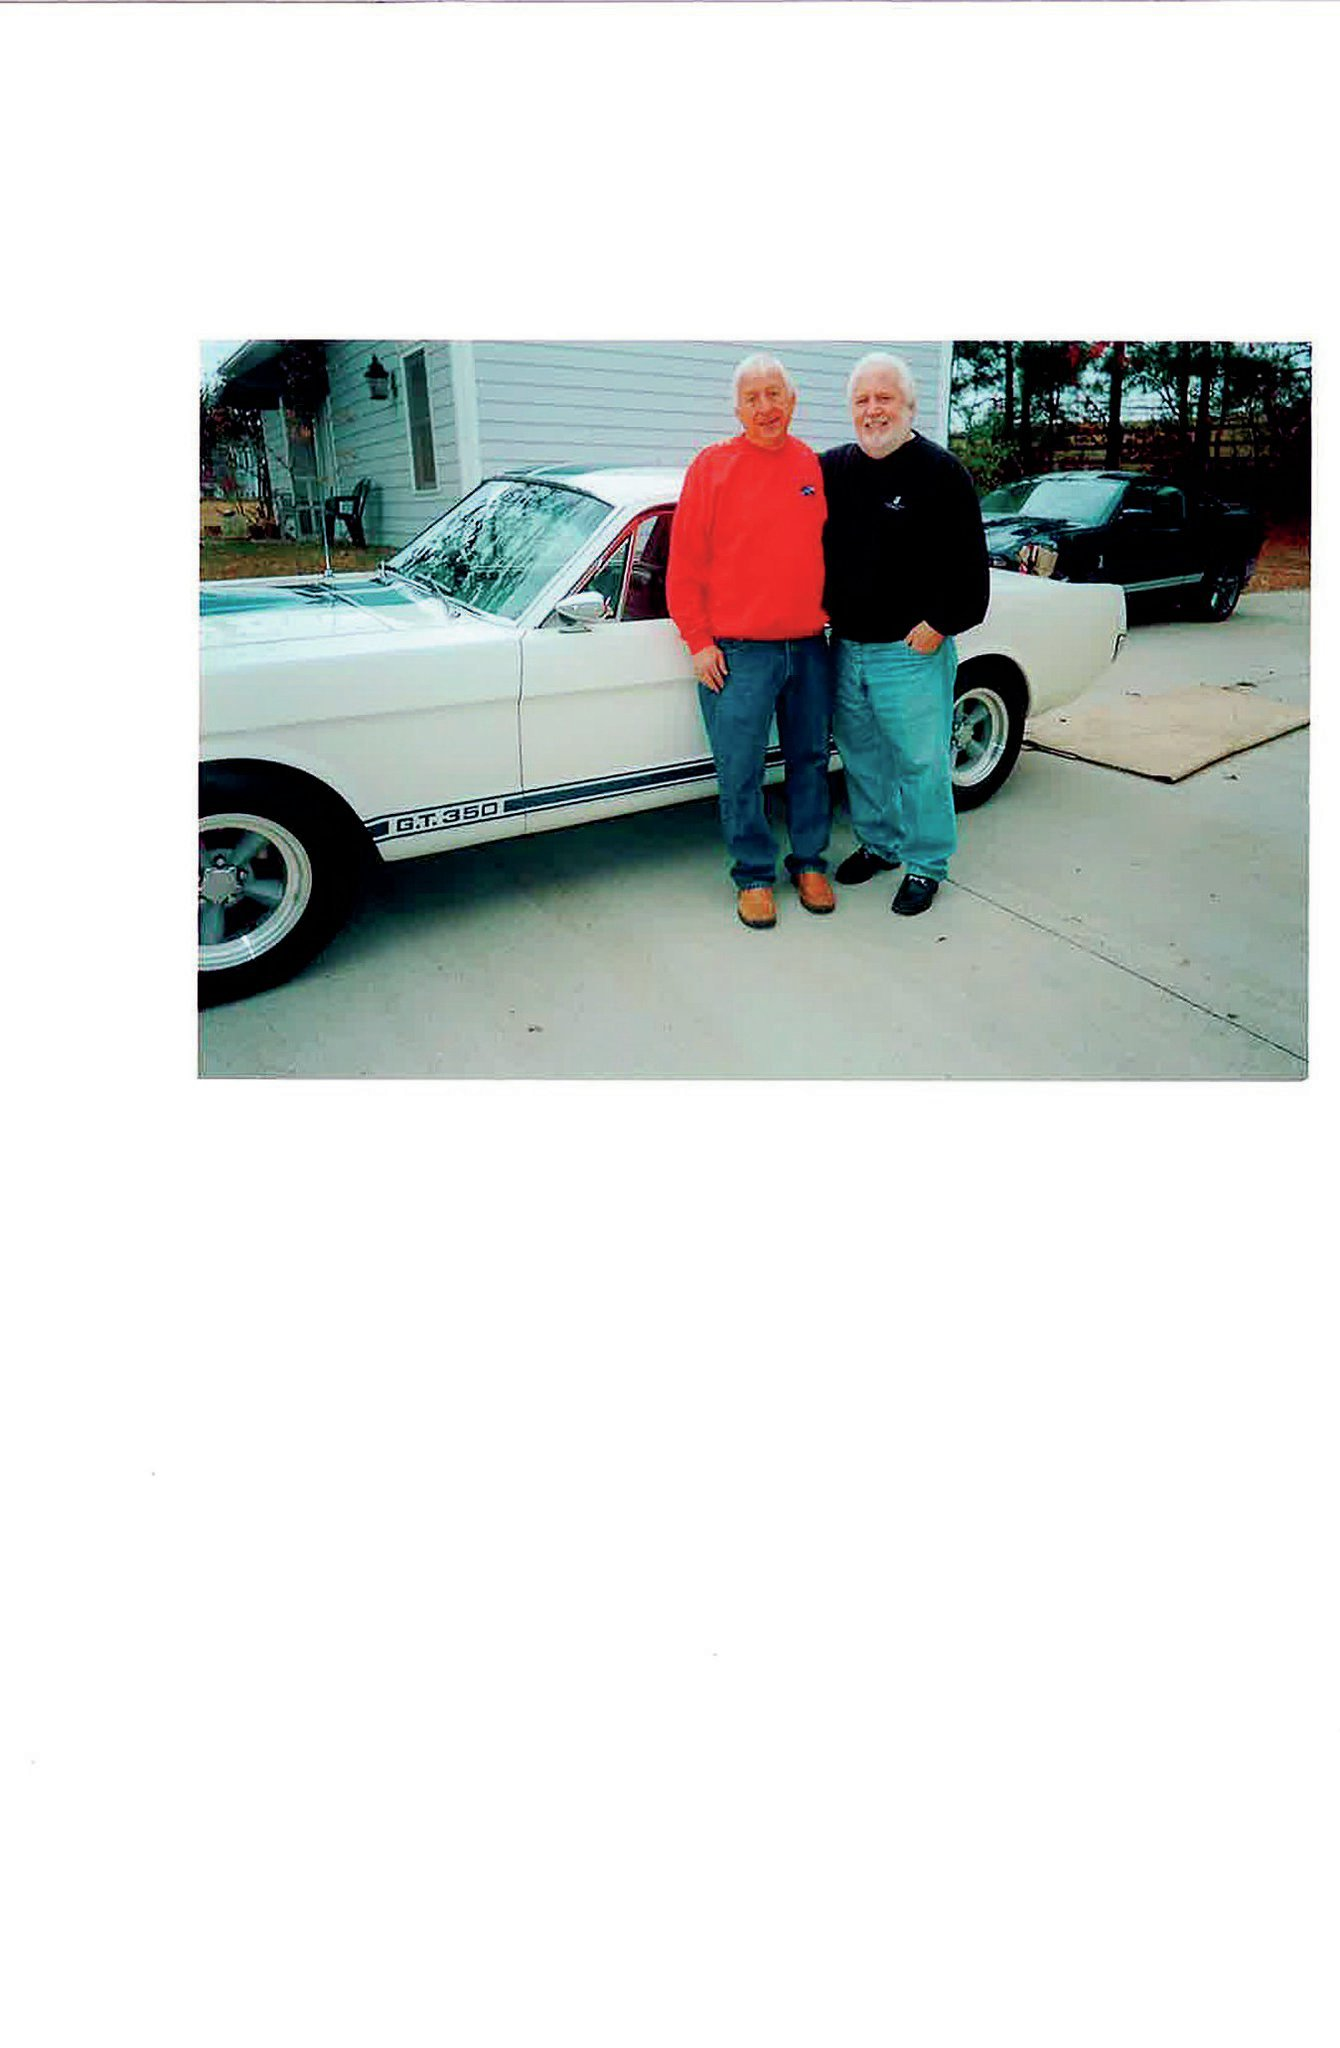 That's current owner Joe Carter on the left. He bought this car's engine and trans in 1974, then the rest of the Shelby in 1983. Marti Kennedy on the right was its original owner in 1966. At the time, 16-year-old Marti had no idea how special the car was nor how special it would become.